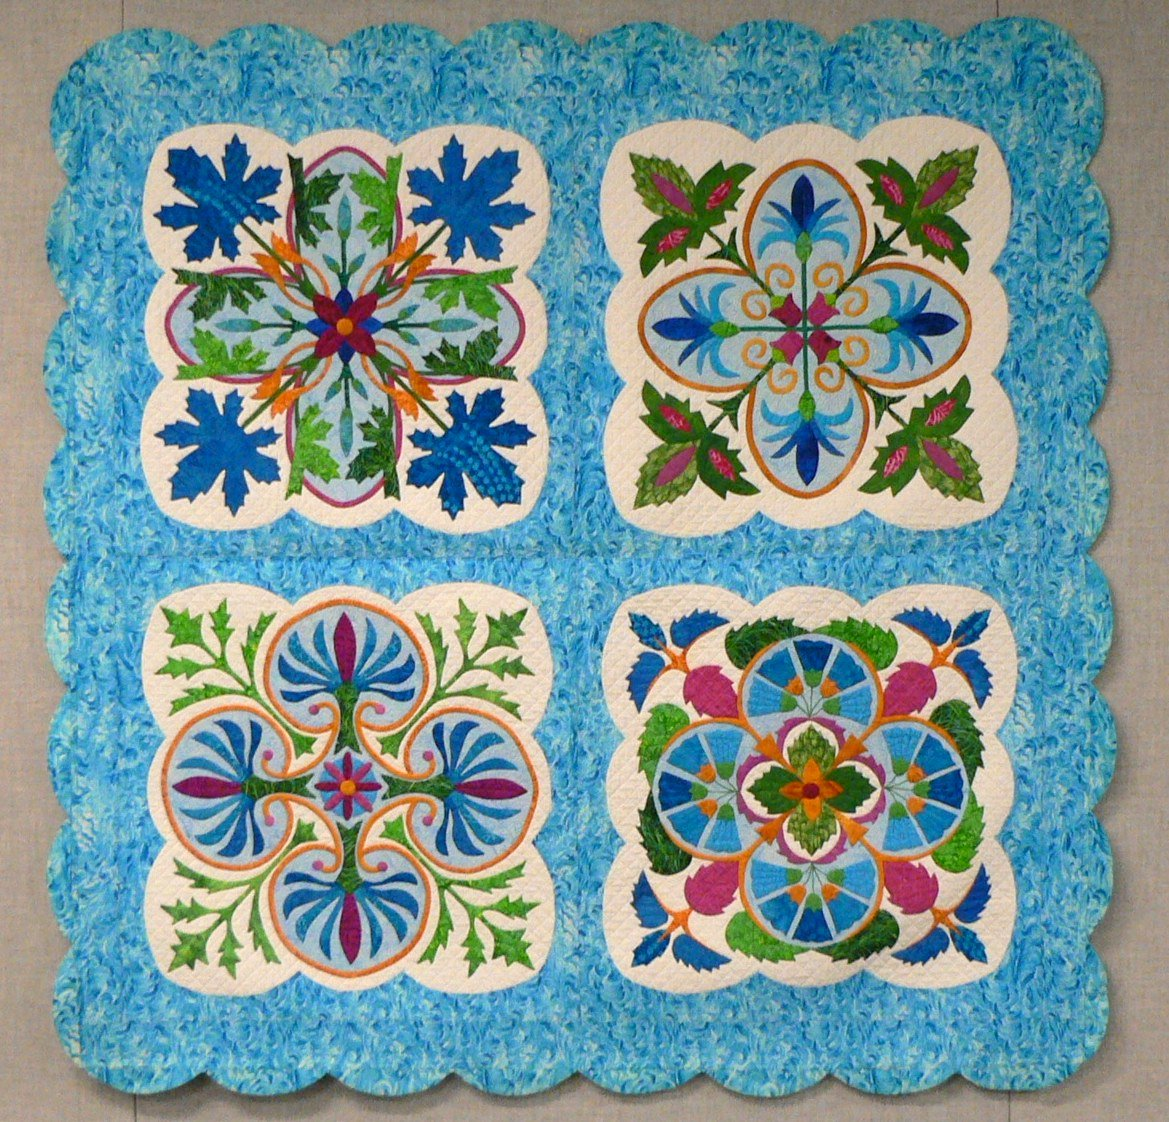 Applique Classe 2 Applique On The Go Karen Kay Buckley Class